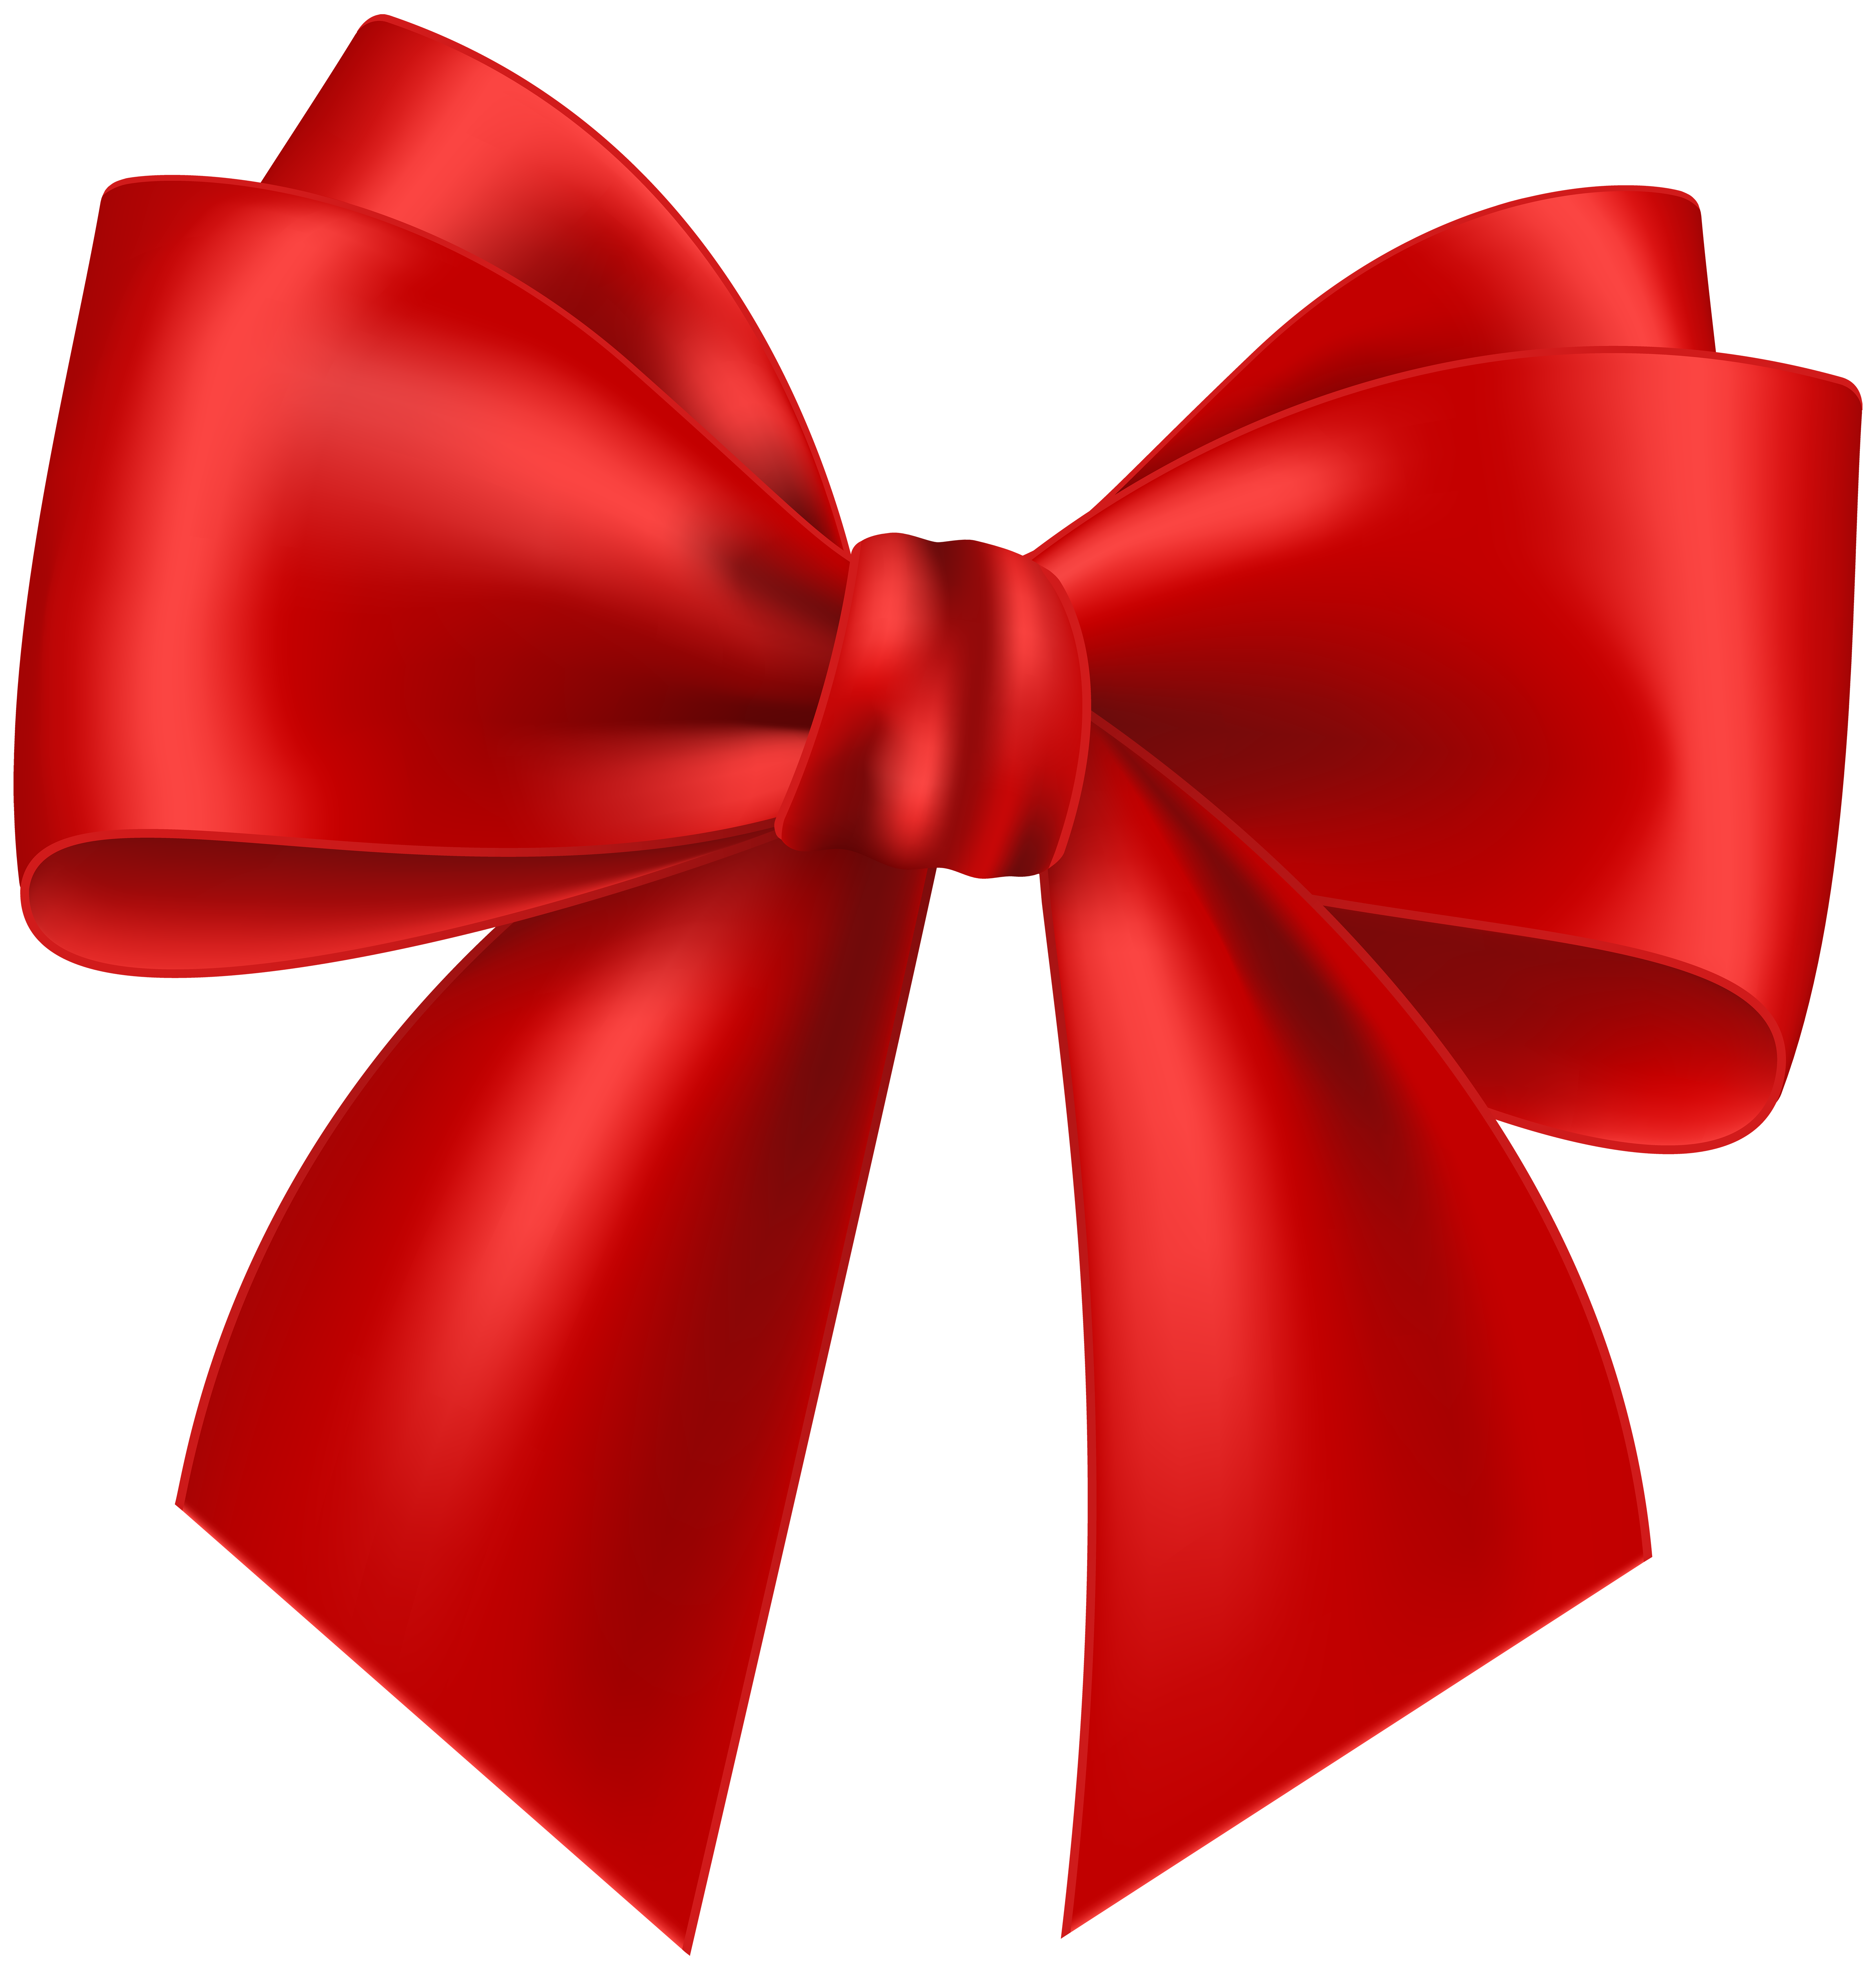 Bow clipart bowknot. Red transparent clip art